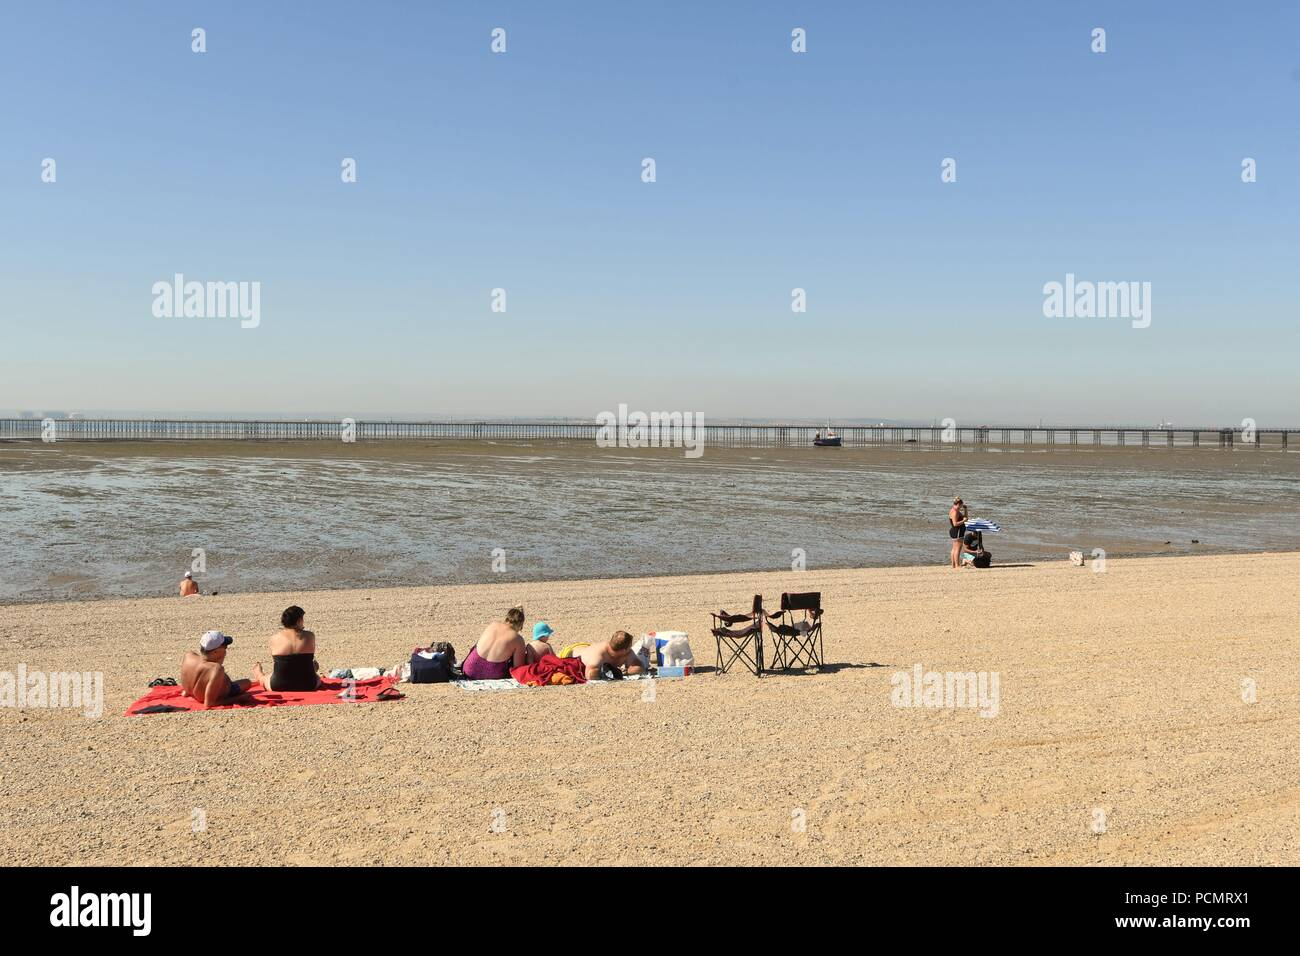 Uk Weather Another Scorching Day In Southend A View Of People Sunbathing On The Beach Credit Ben Rector Alamy Live News